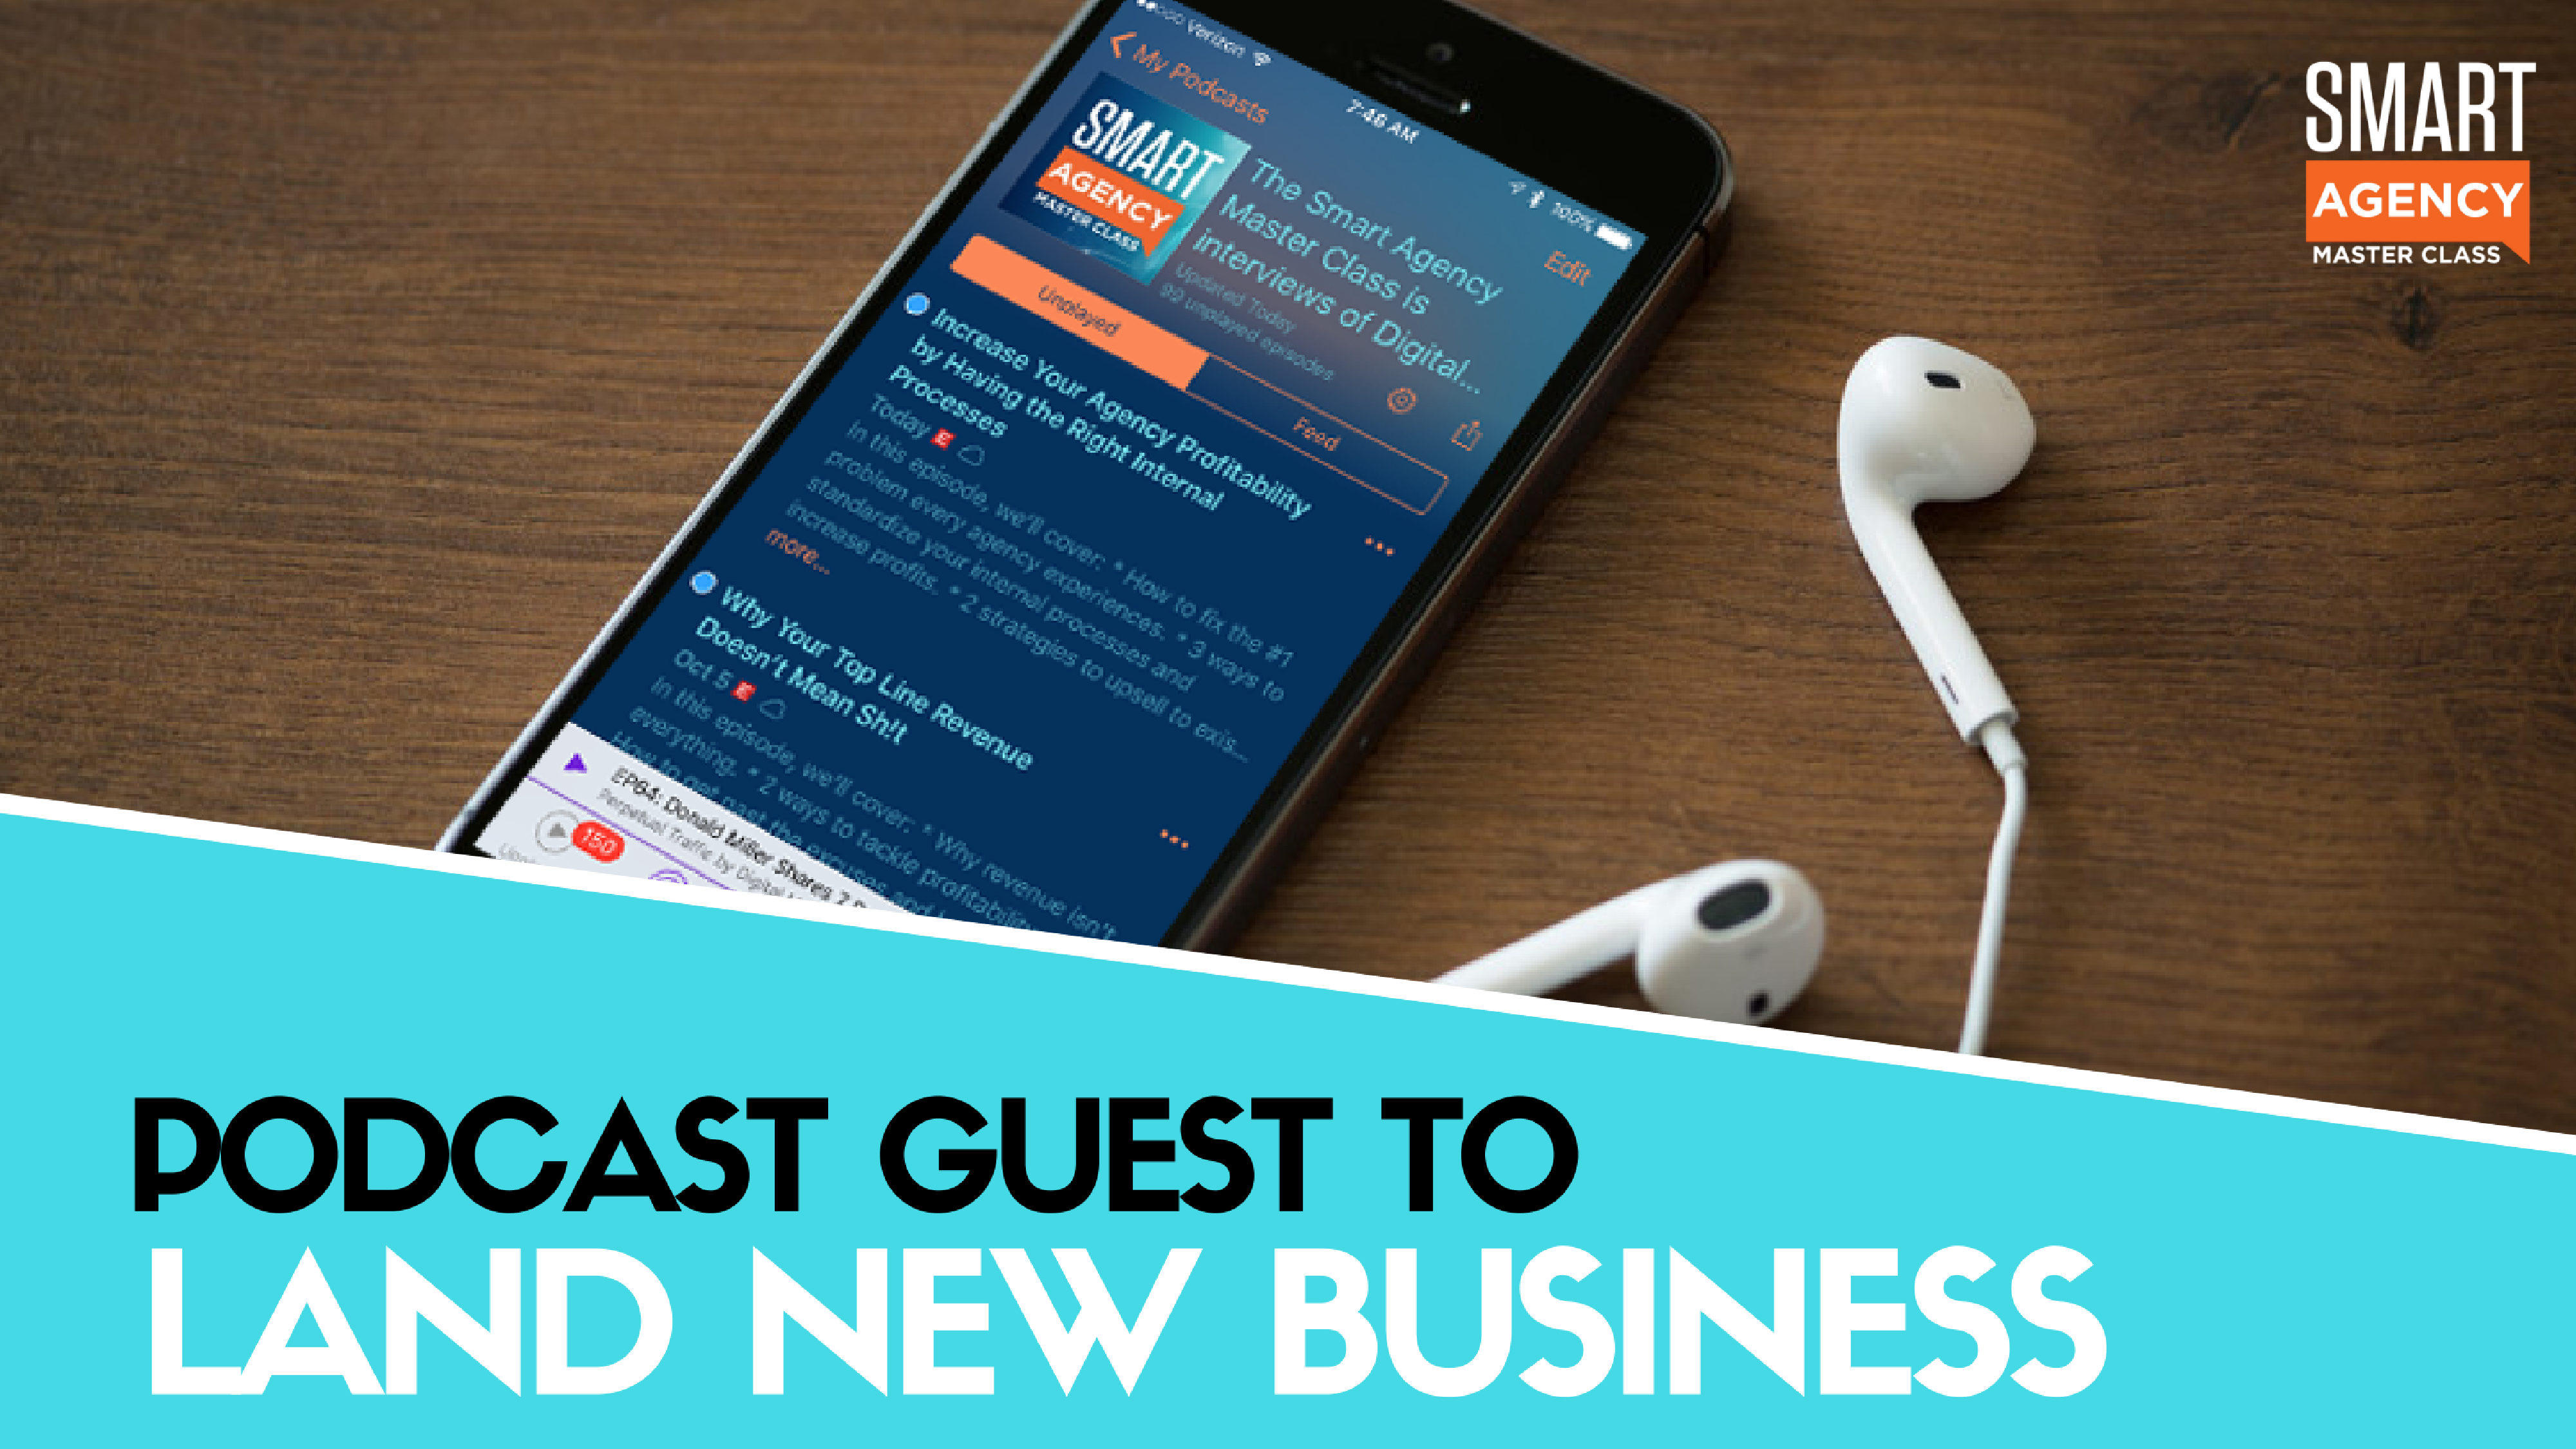 Lead Generation Strategy: How To Be a Podcast Guest & Land New Agency Business